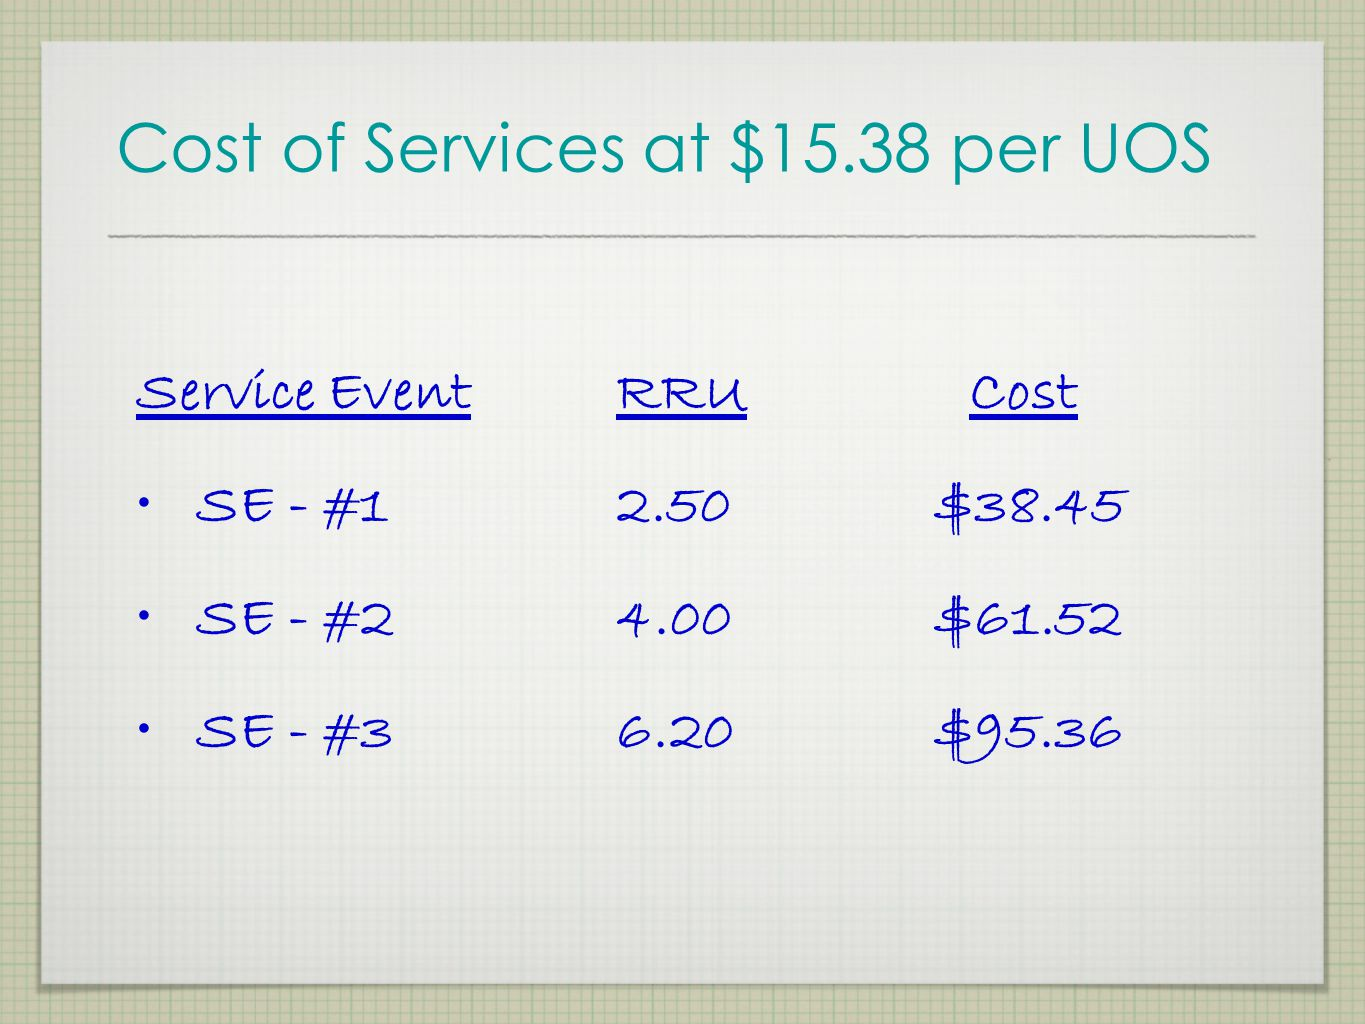 Cost of Services at $15.38 per UOS